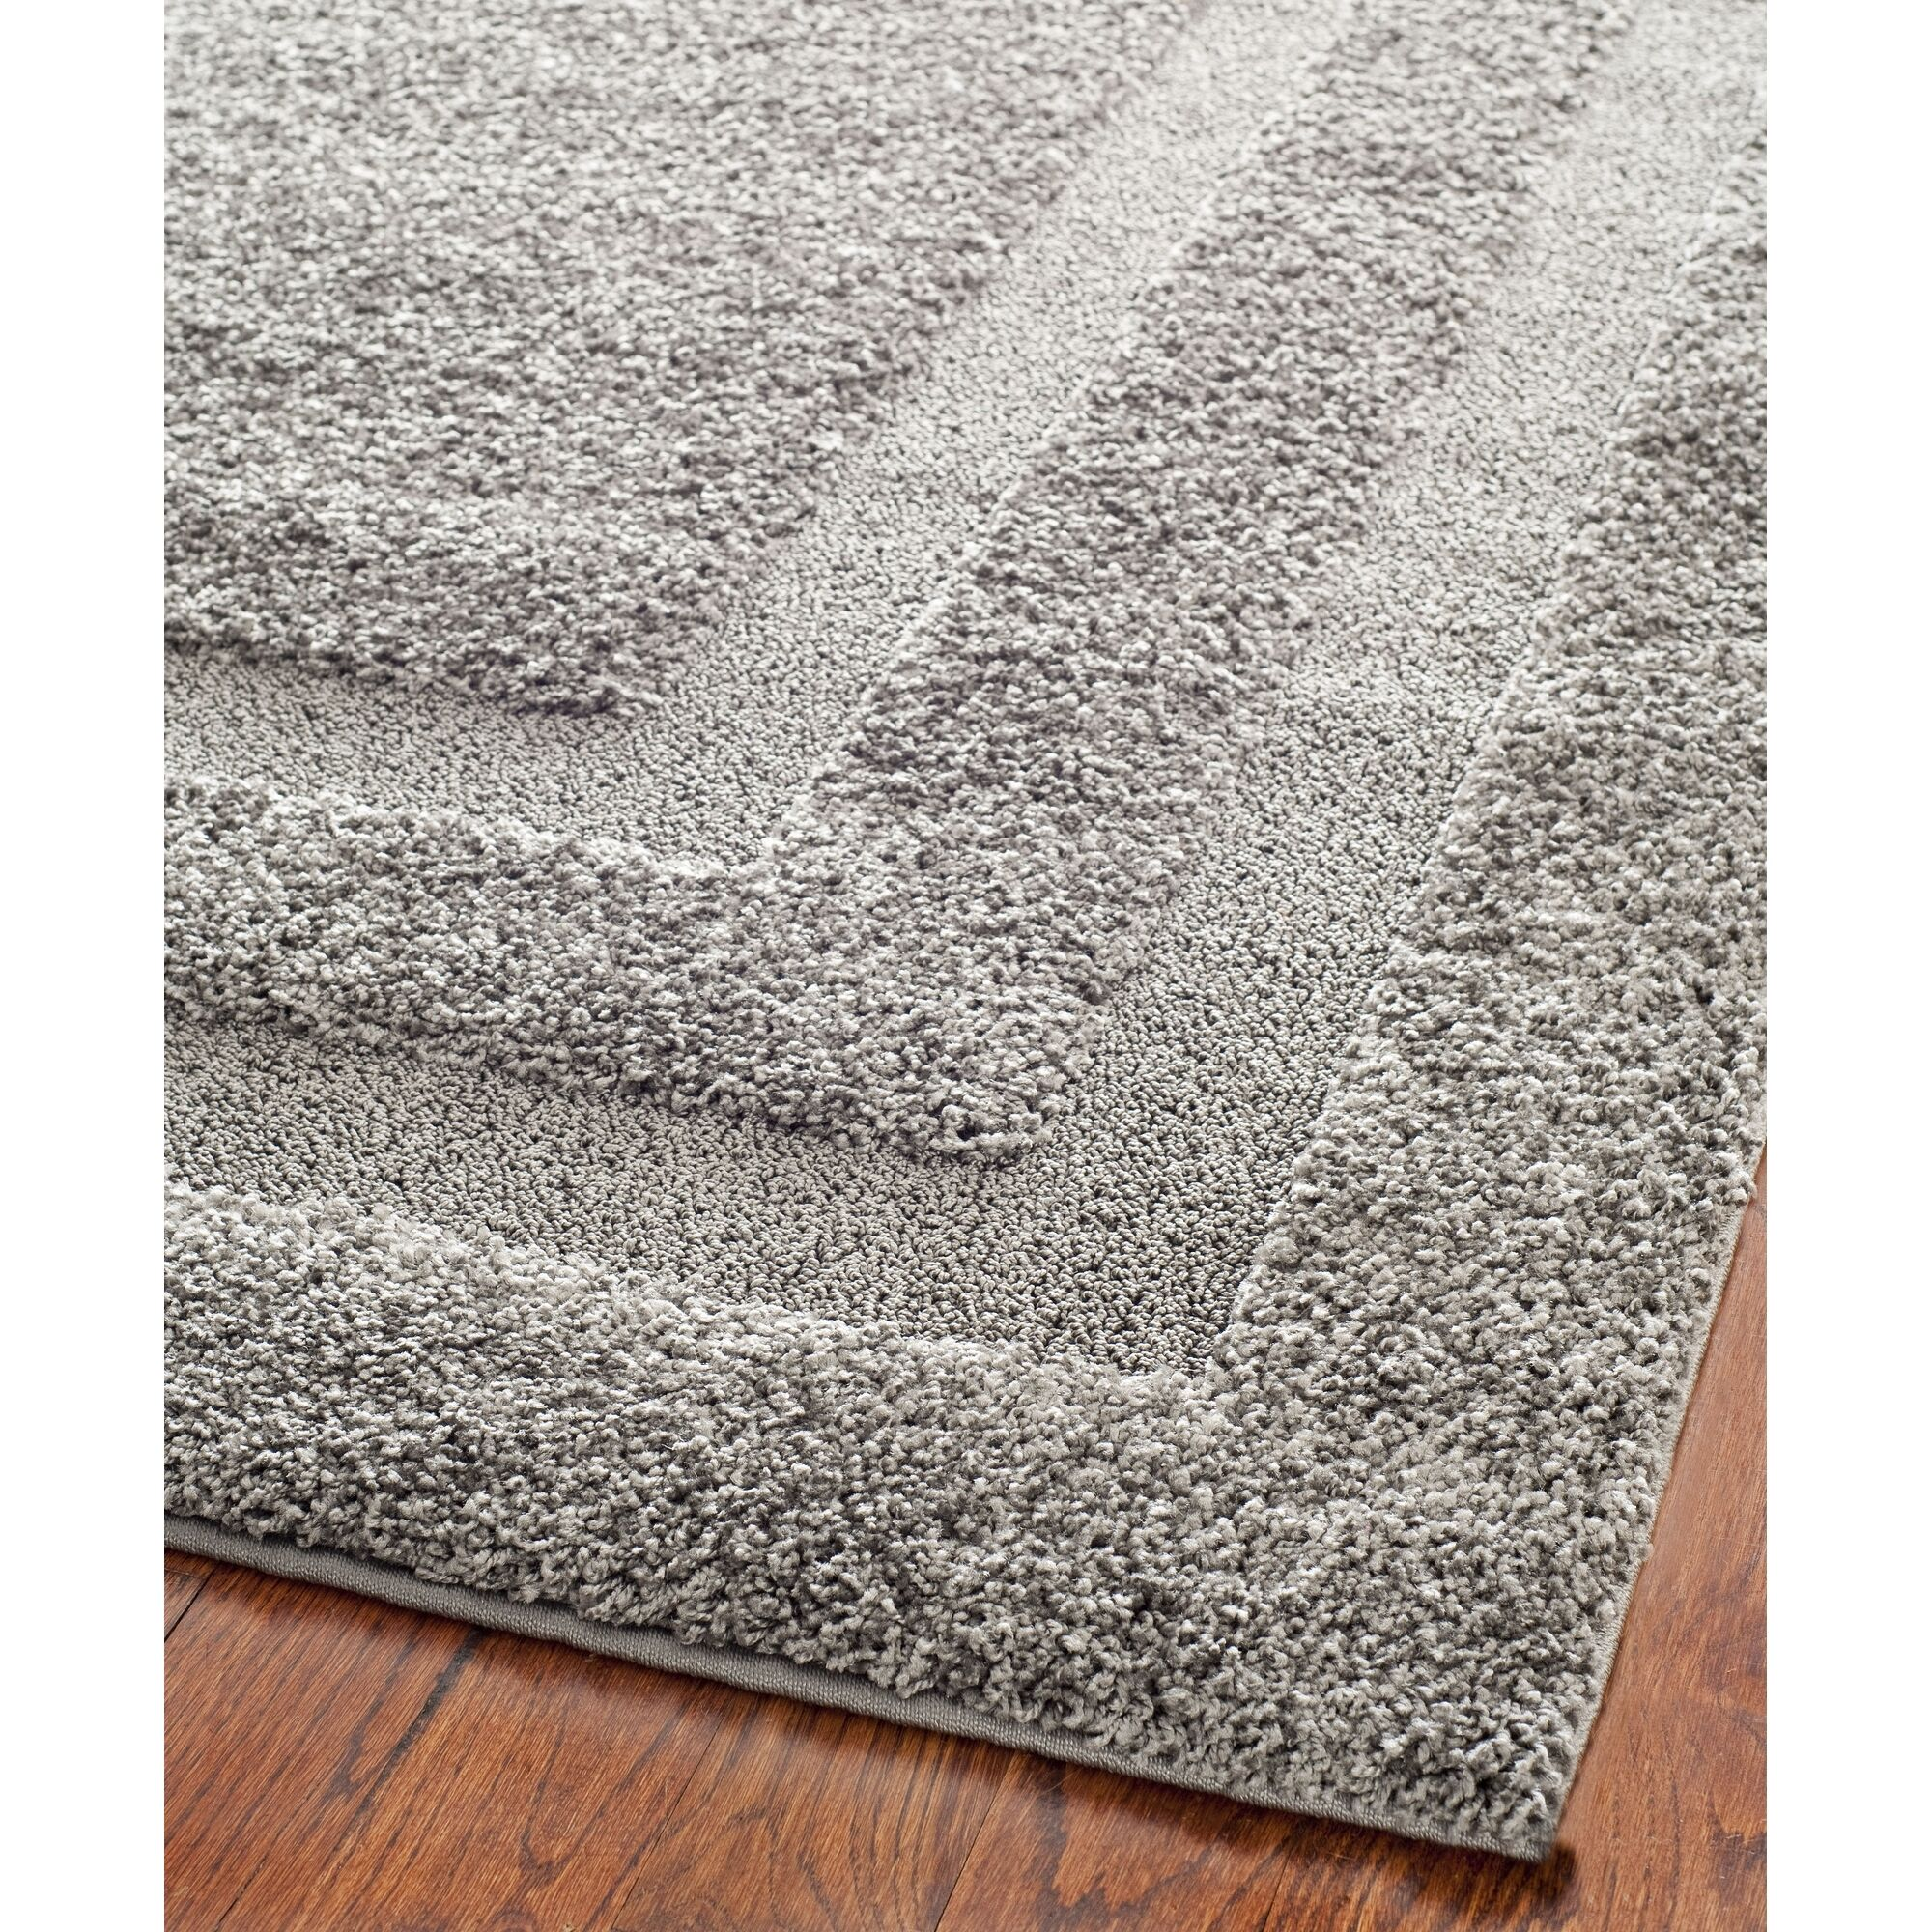 Altha Gray Area Rug Rug Size: Rectangle 5'3